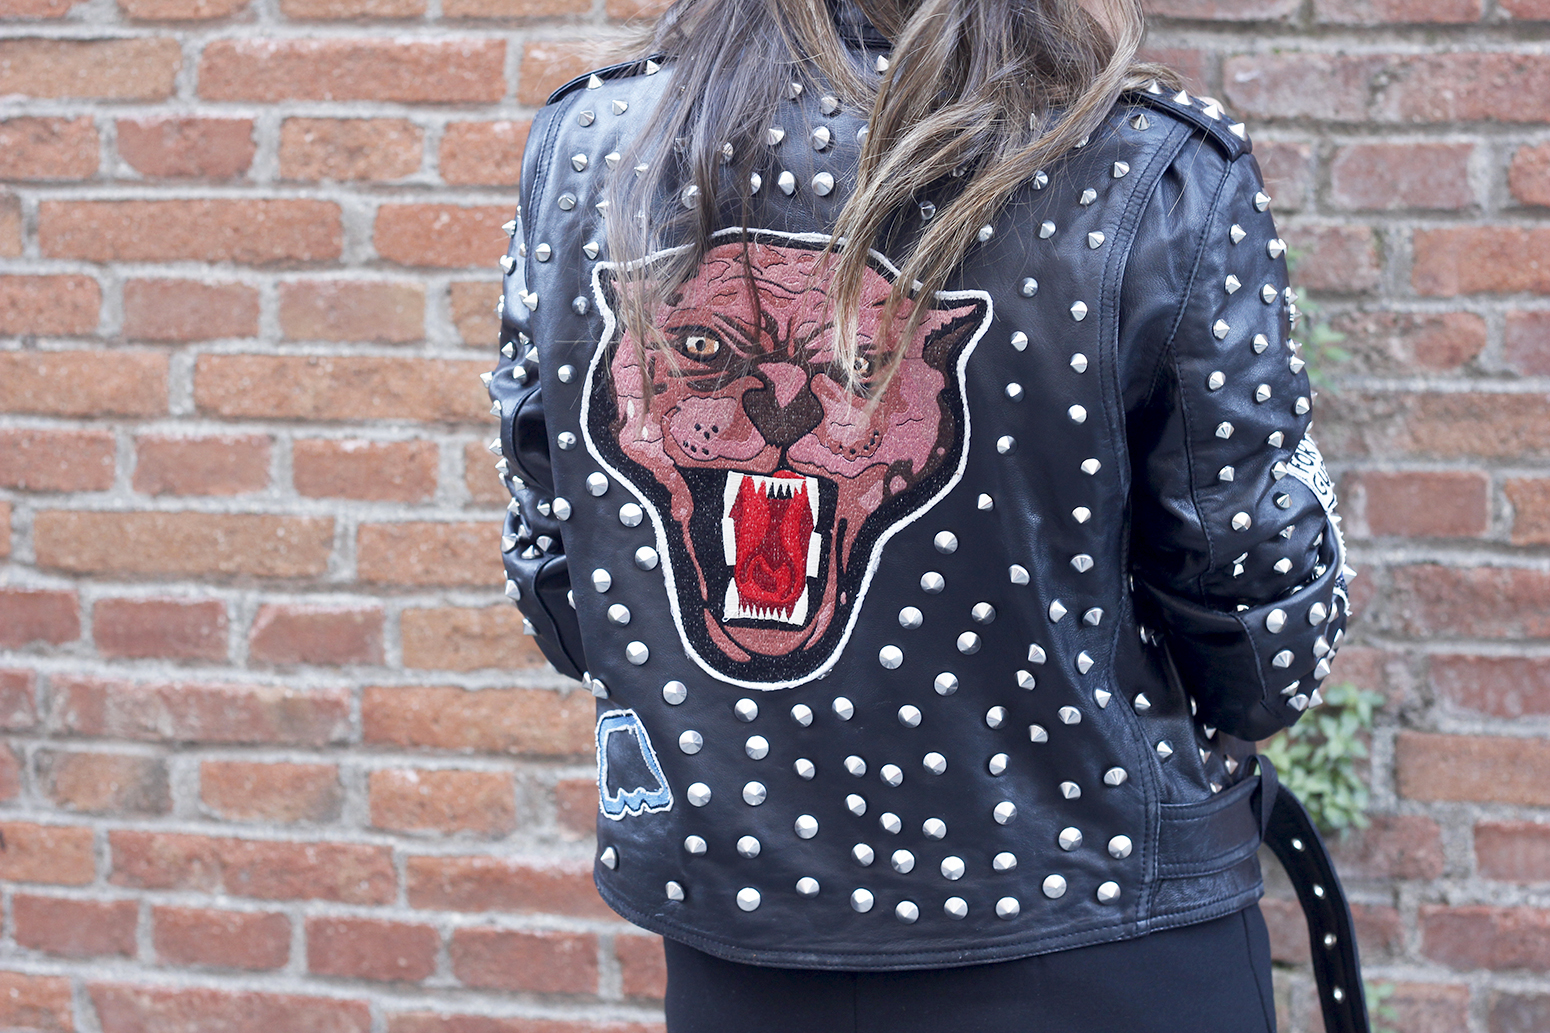 Leather jacket with studs and patches black skirt heels style fashion outfit20